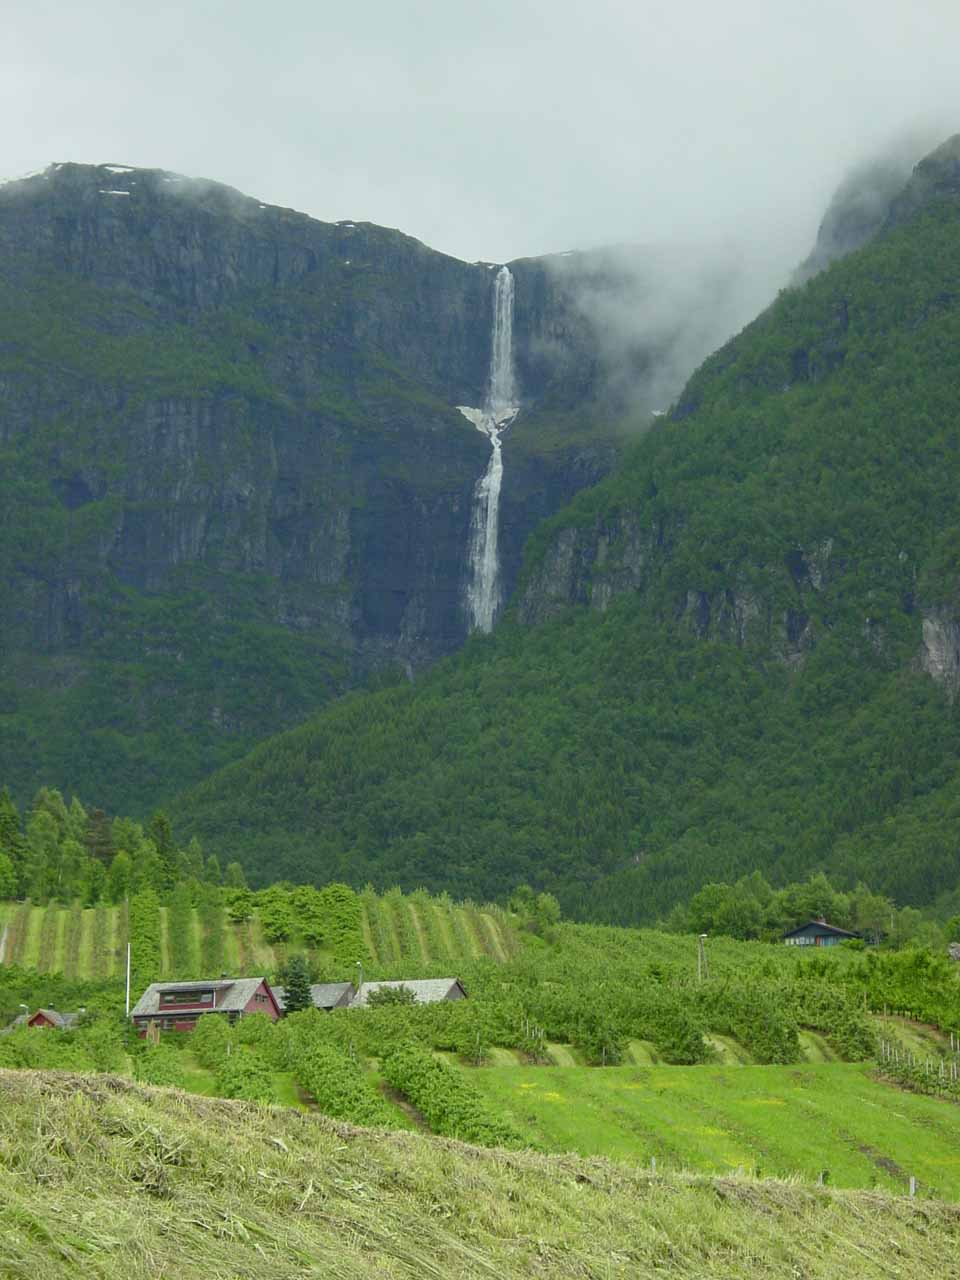 As we drove further north along the Rv13 from Ædnafossen towards Ullensvang, we saw this gorgeous waterfall called Skrikjofossen on the east side of Sørfjorden